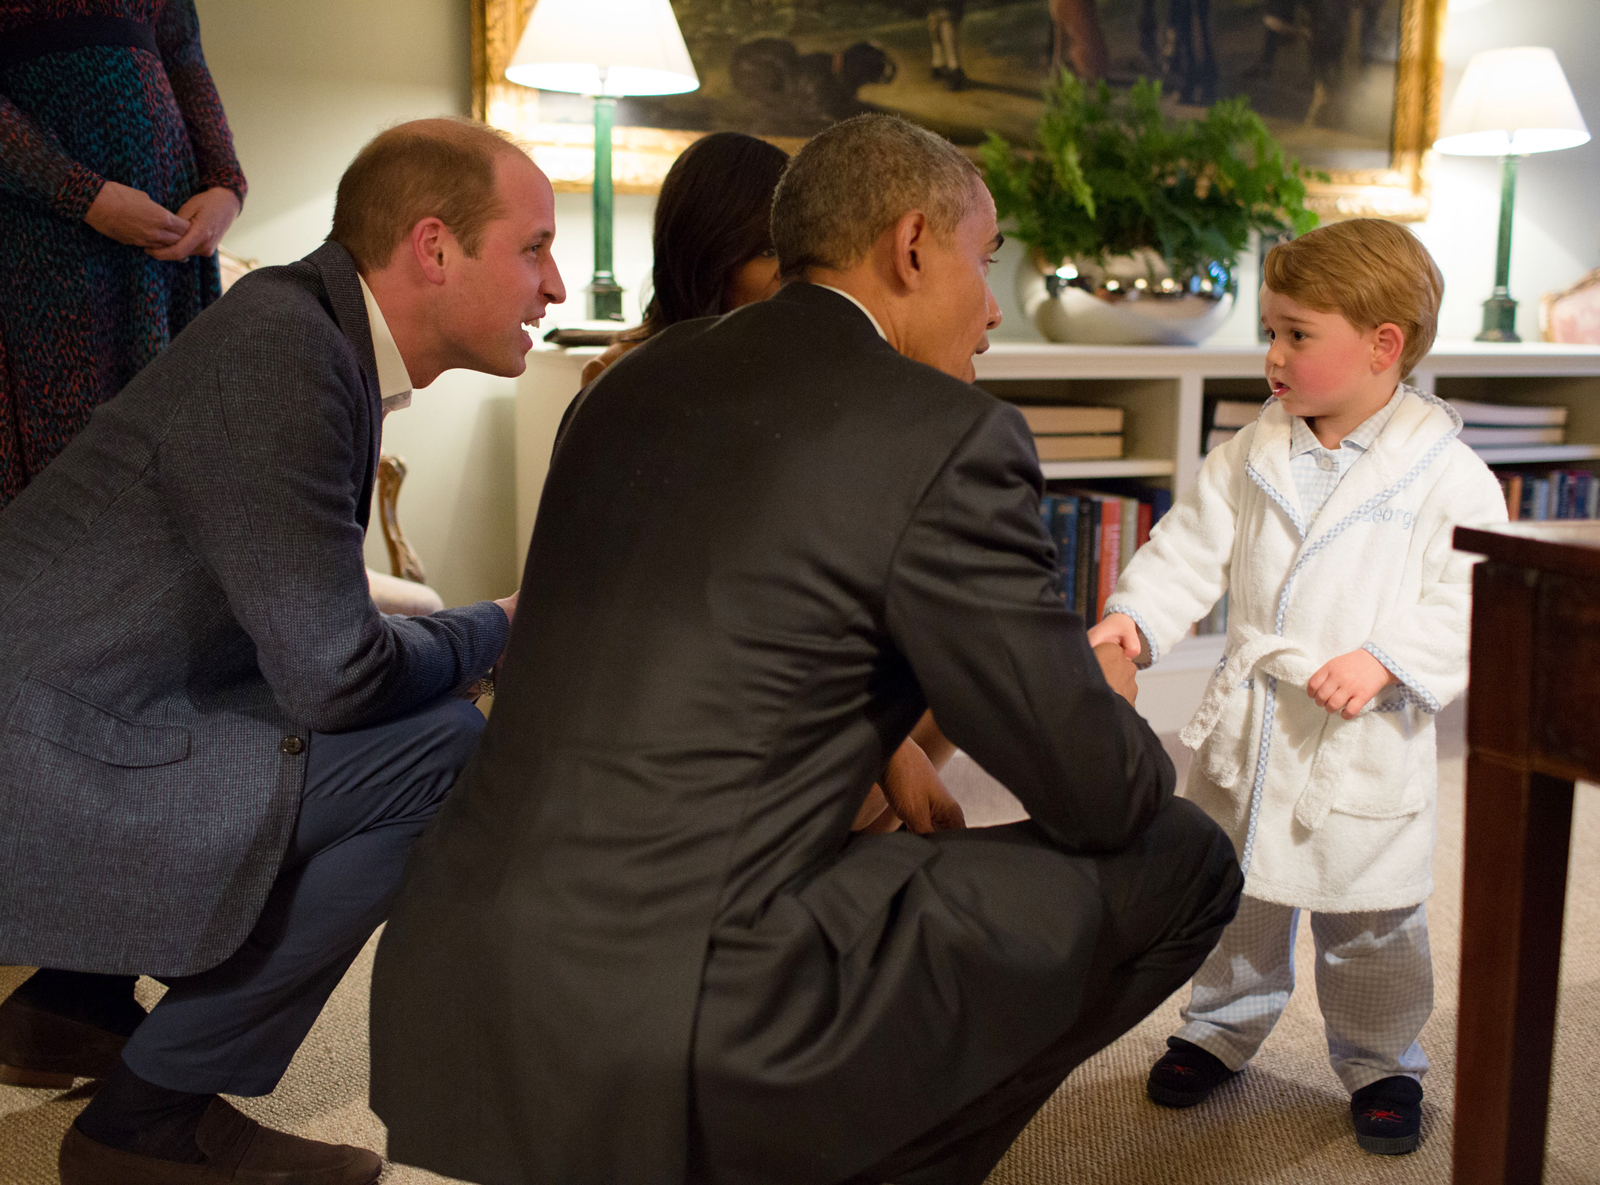 <p>Prince George Meets President Obama ... In His Robe?</p>